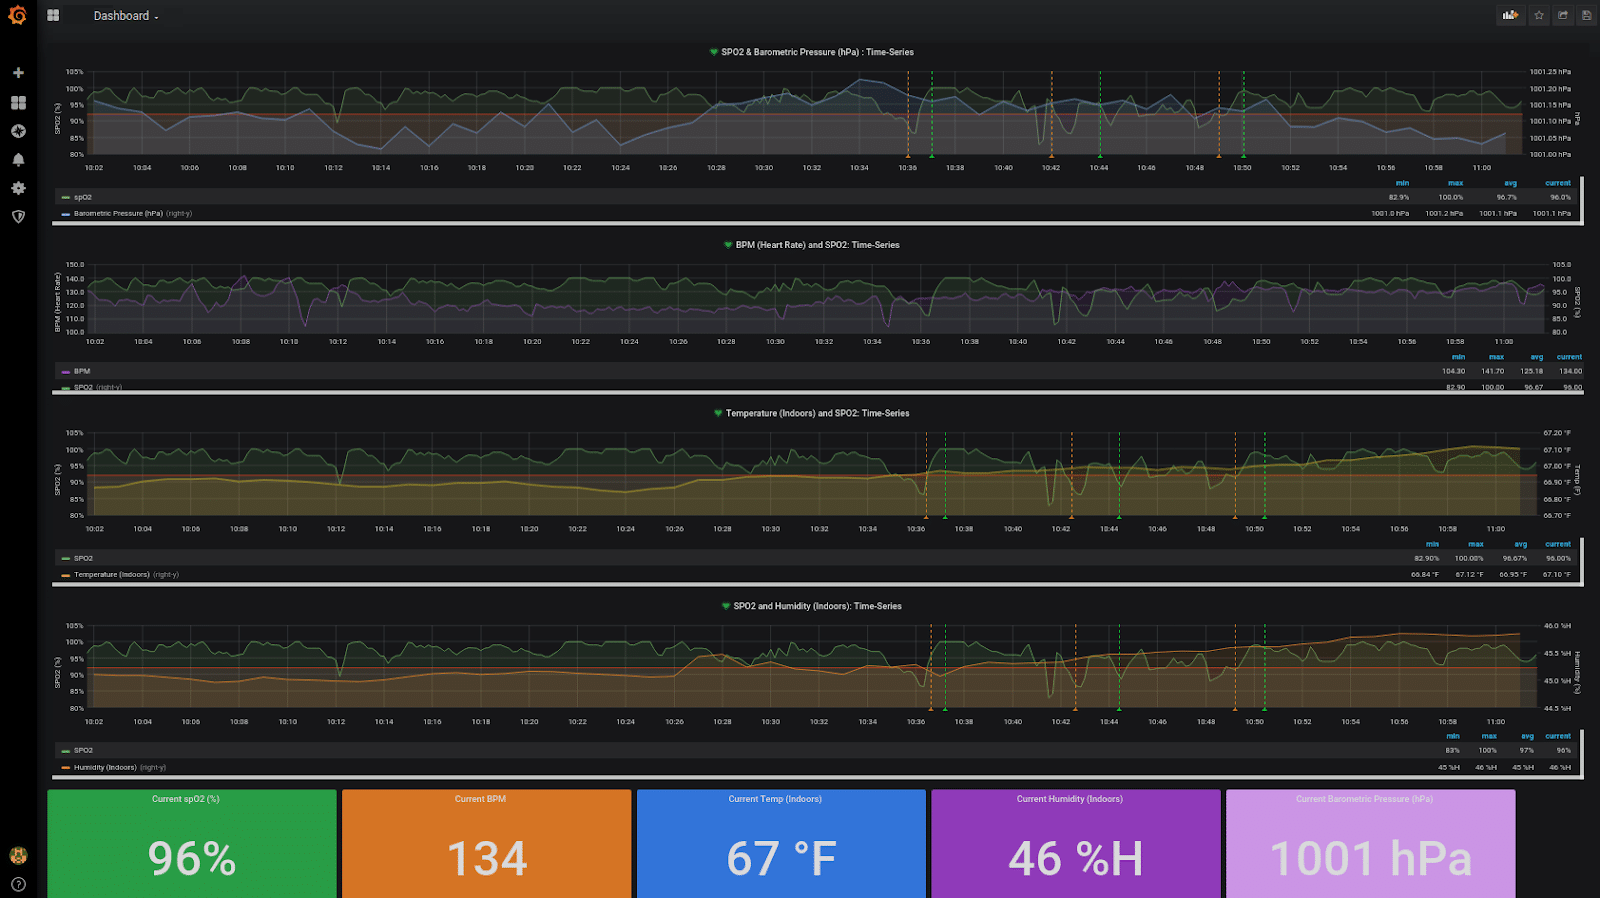 InfluxDB health monitoring dashboard version 2 - charts